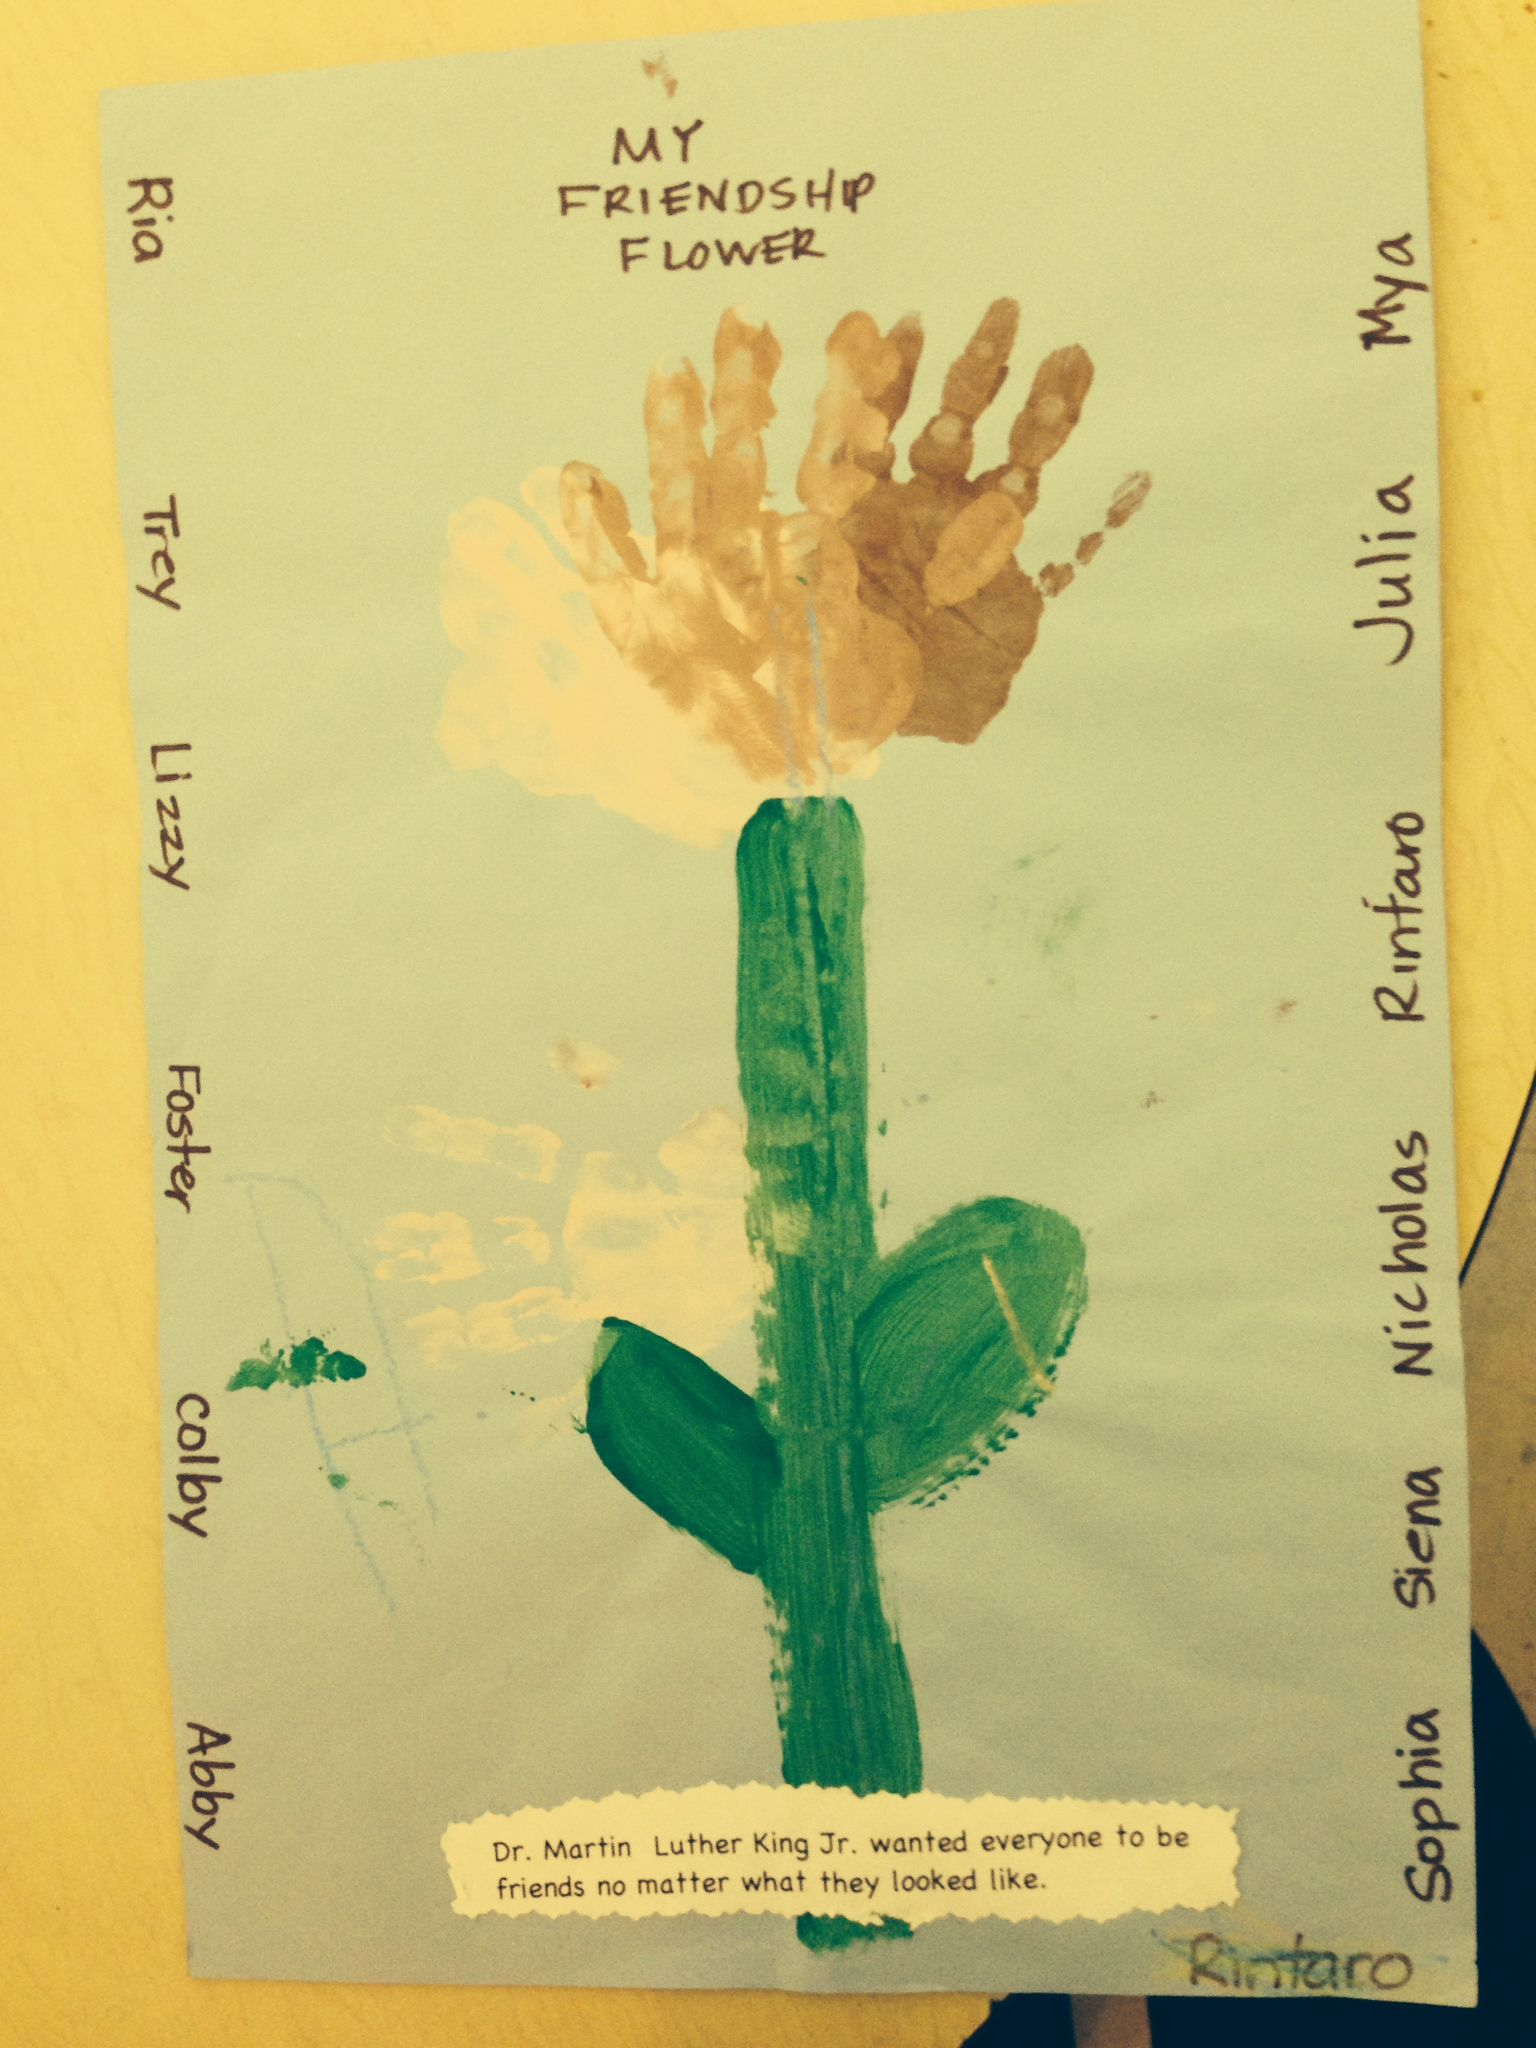 Pre-K 3 students in Mrs. Stayer's class made these friendship flowers in honor of Martin Luther King, Jr. Day